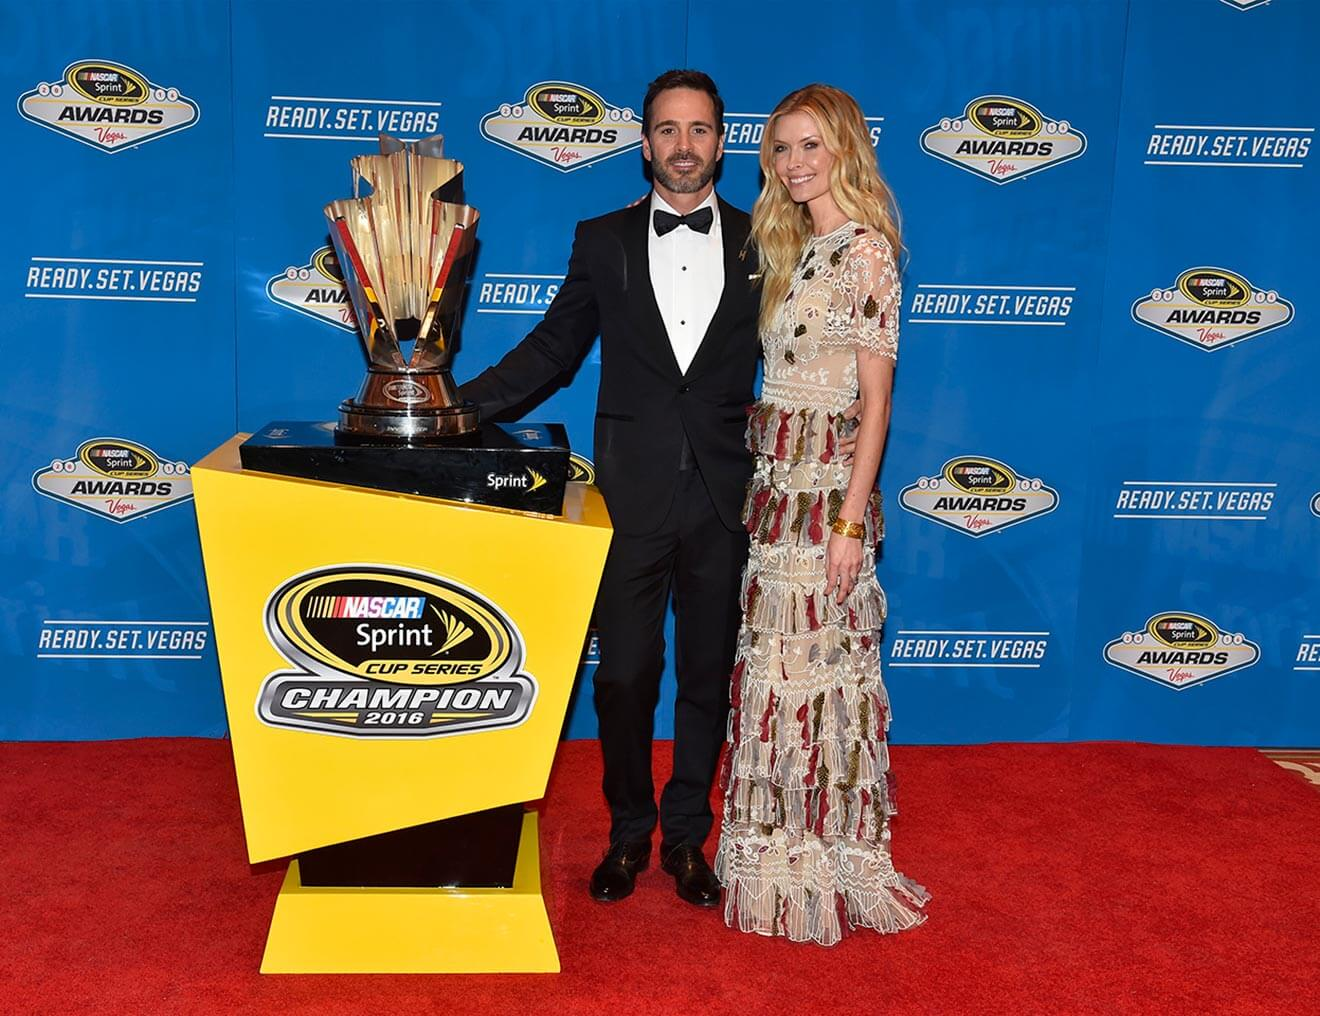 Jimmie-Johnson-wife-ready-set-vegas-awards